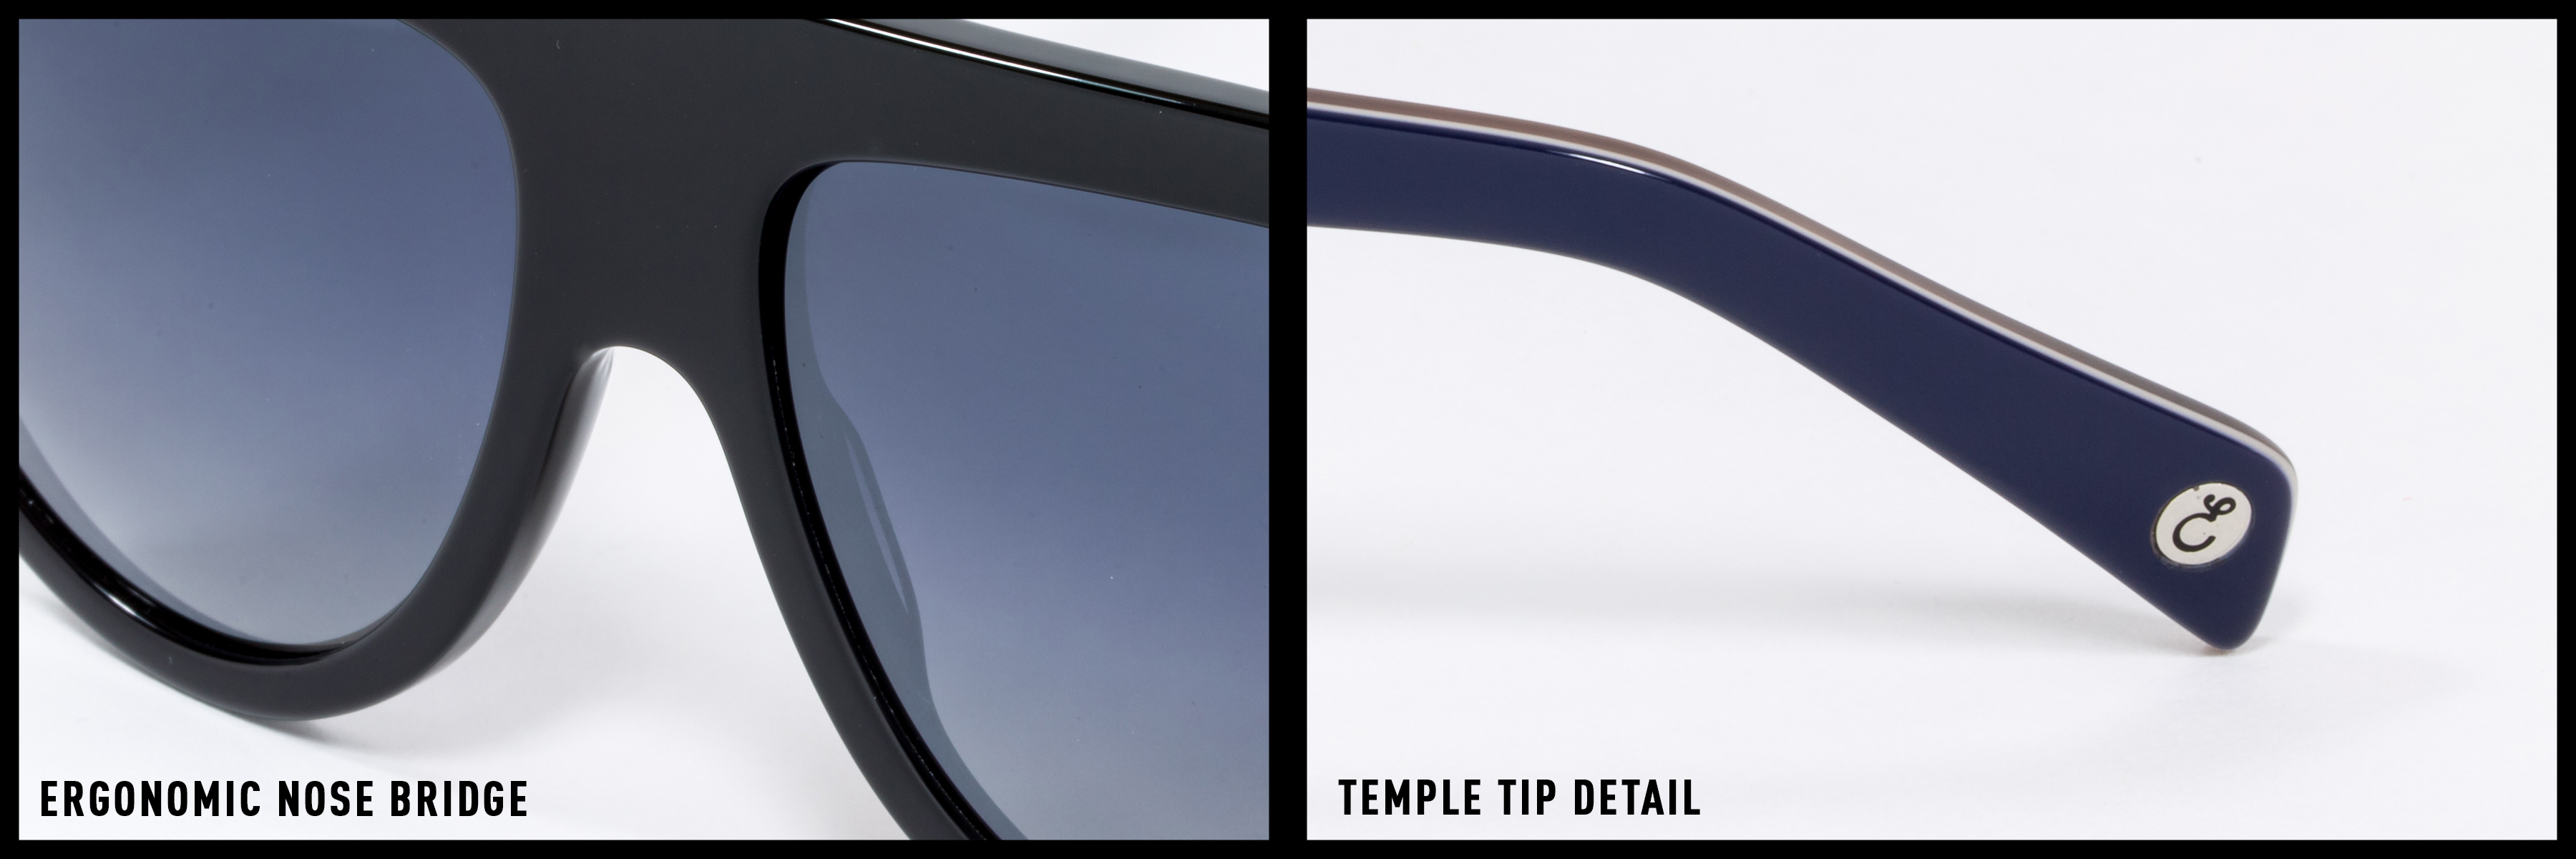 13f6261f8b4 Pins in the frame and temples of our sunglasses provide structural  integrity